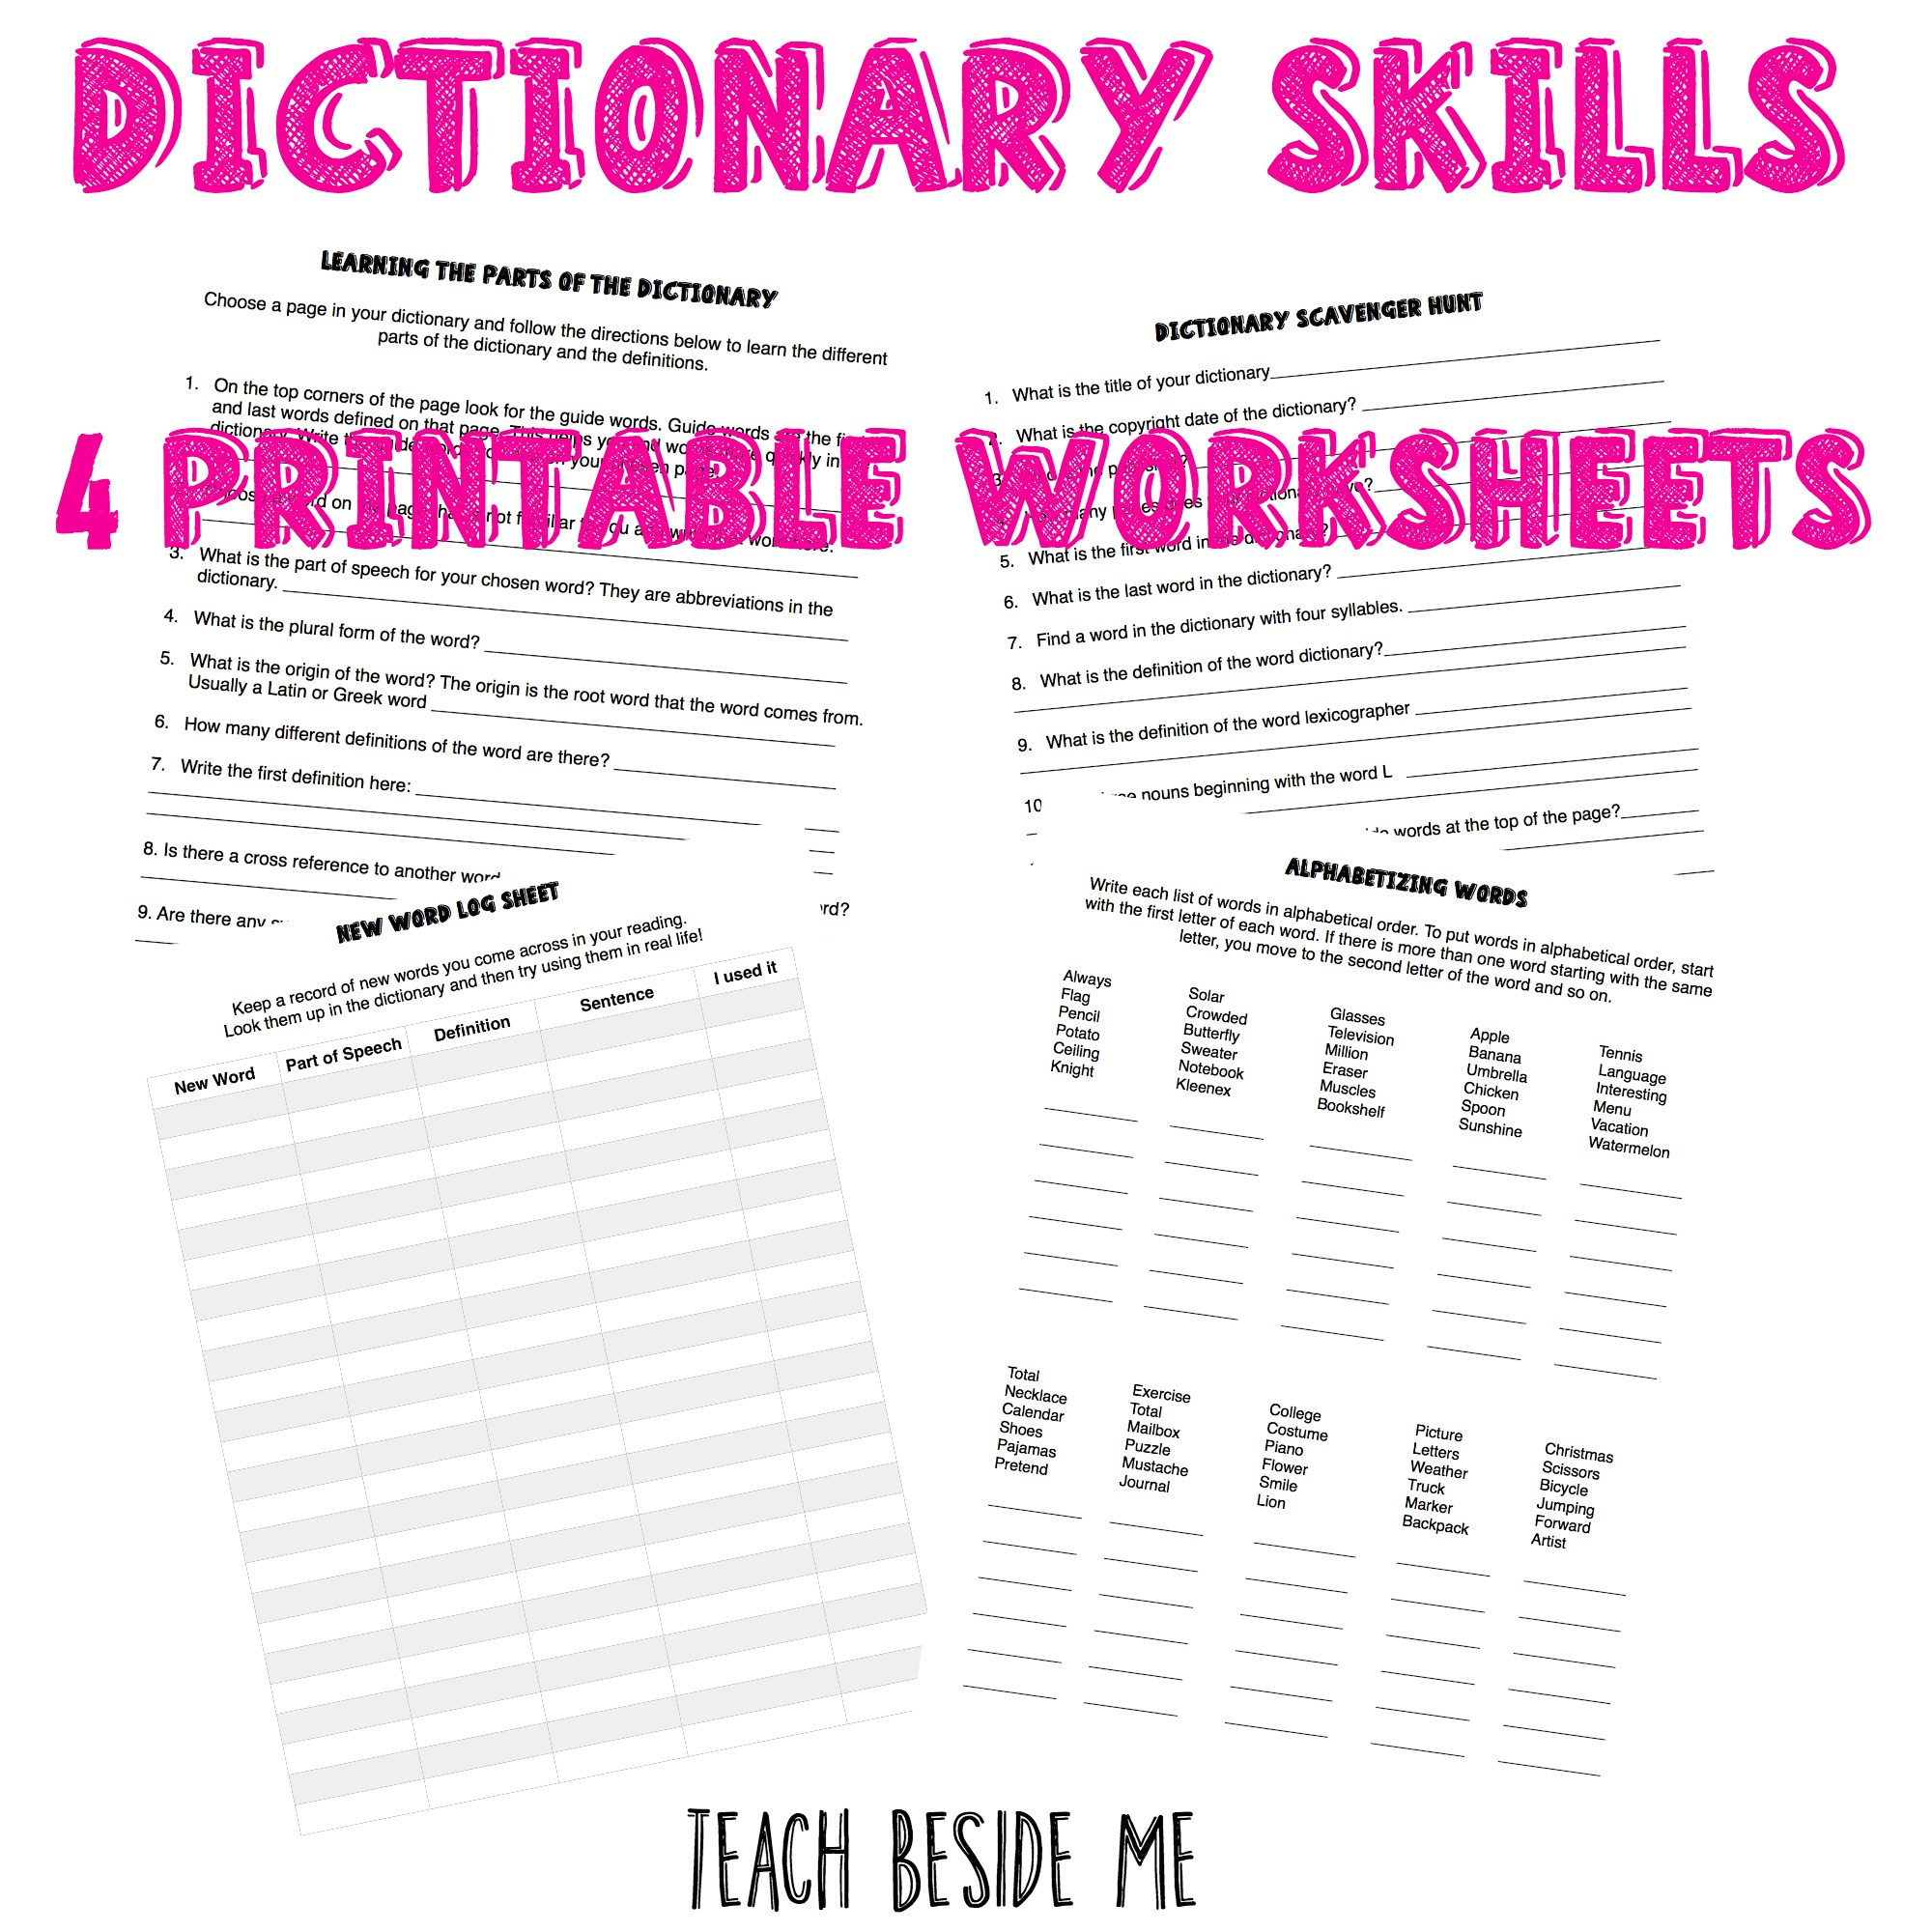 Worksheets Dictionary Skills Worksheets dictionary skills worksheets teach beside me worksheets